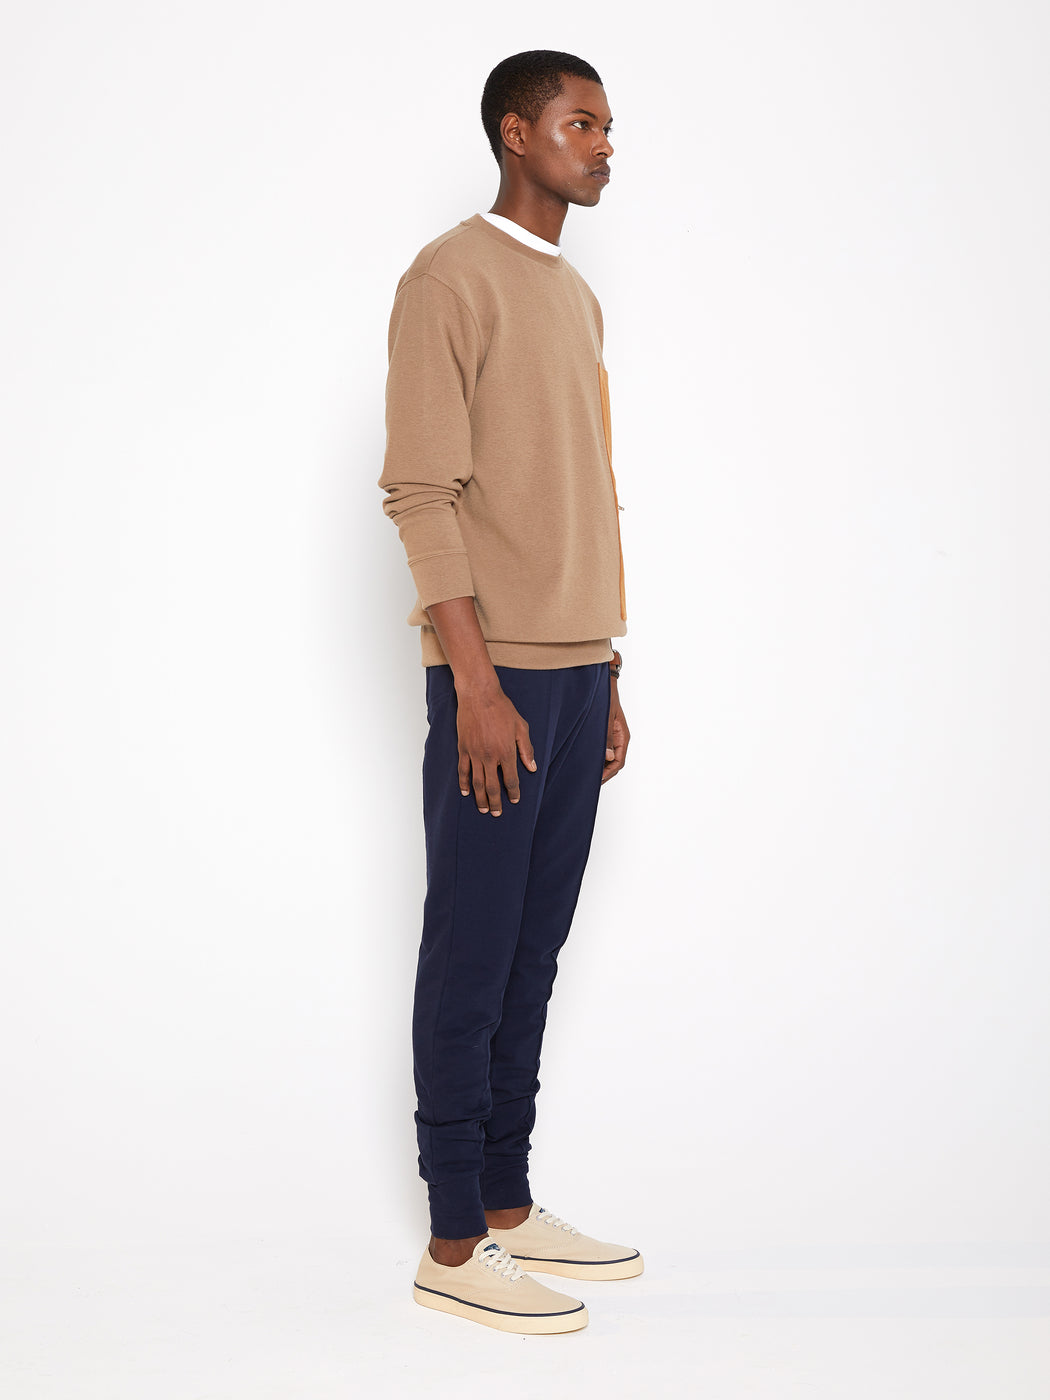 Model wearing Men Pocket Blocked Sweatshirt in Orange/ Camel (Side View)